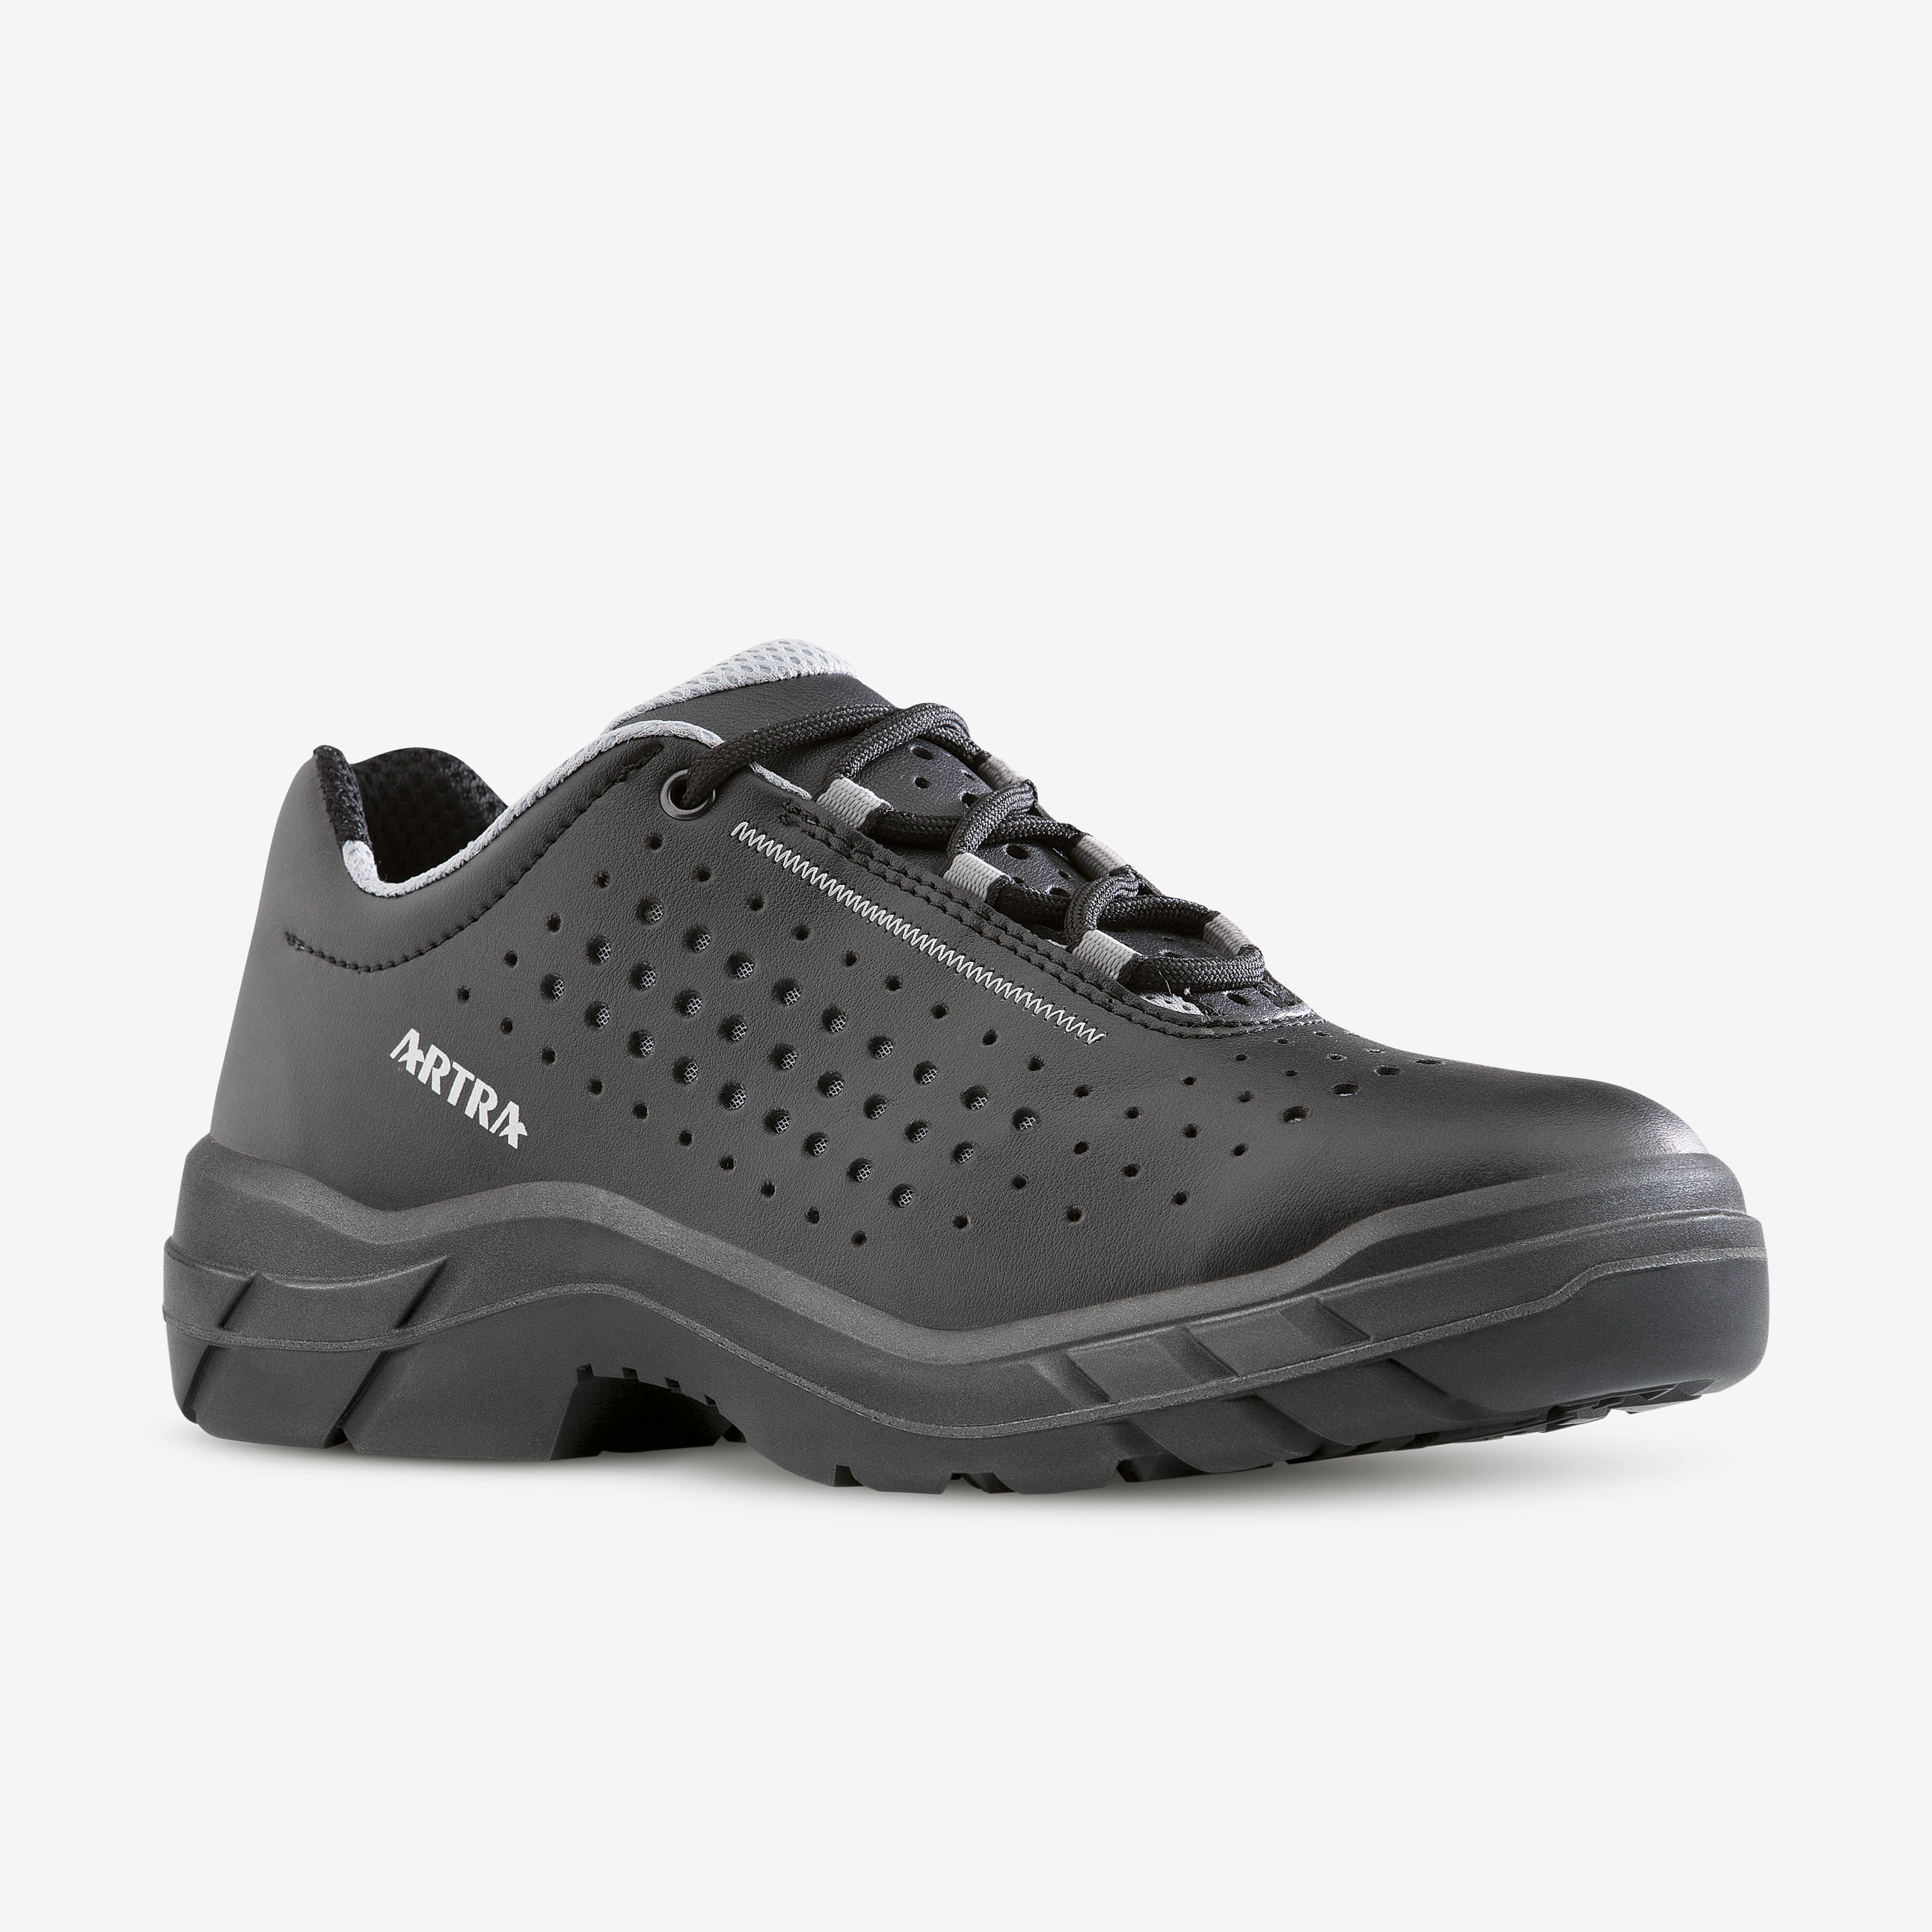 d1955aa51f6d Safety footwear ARTRA - safety half shoes 930 Air 6660 S1